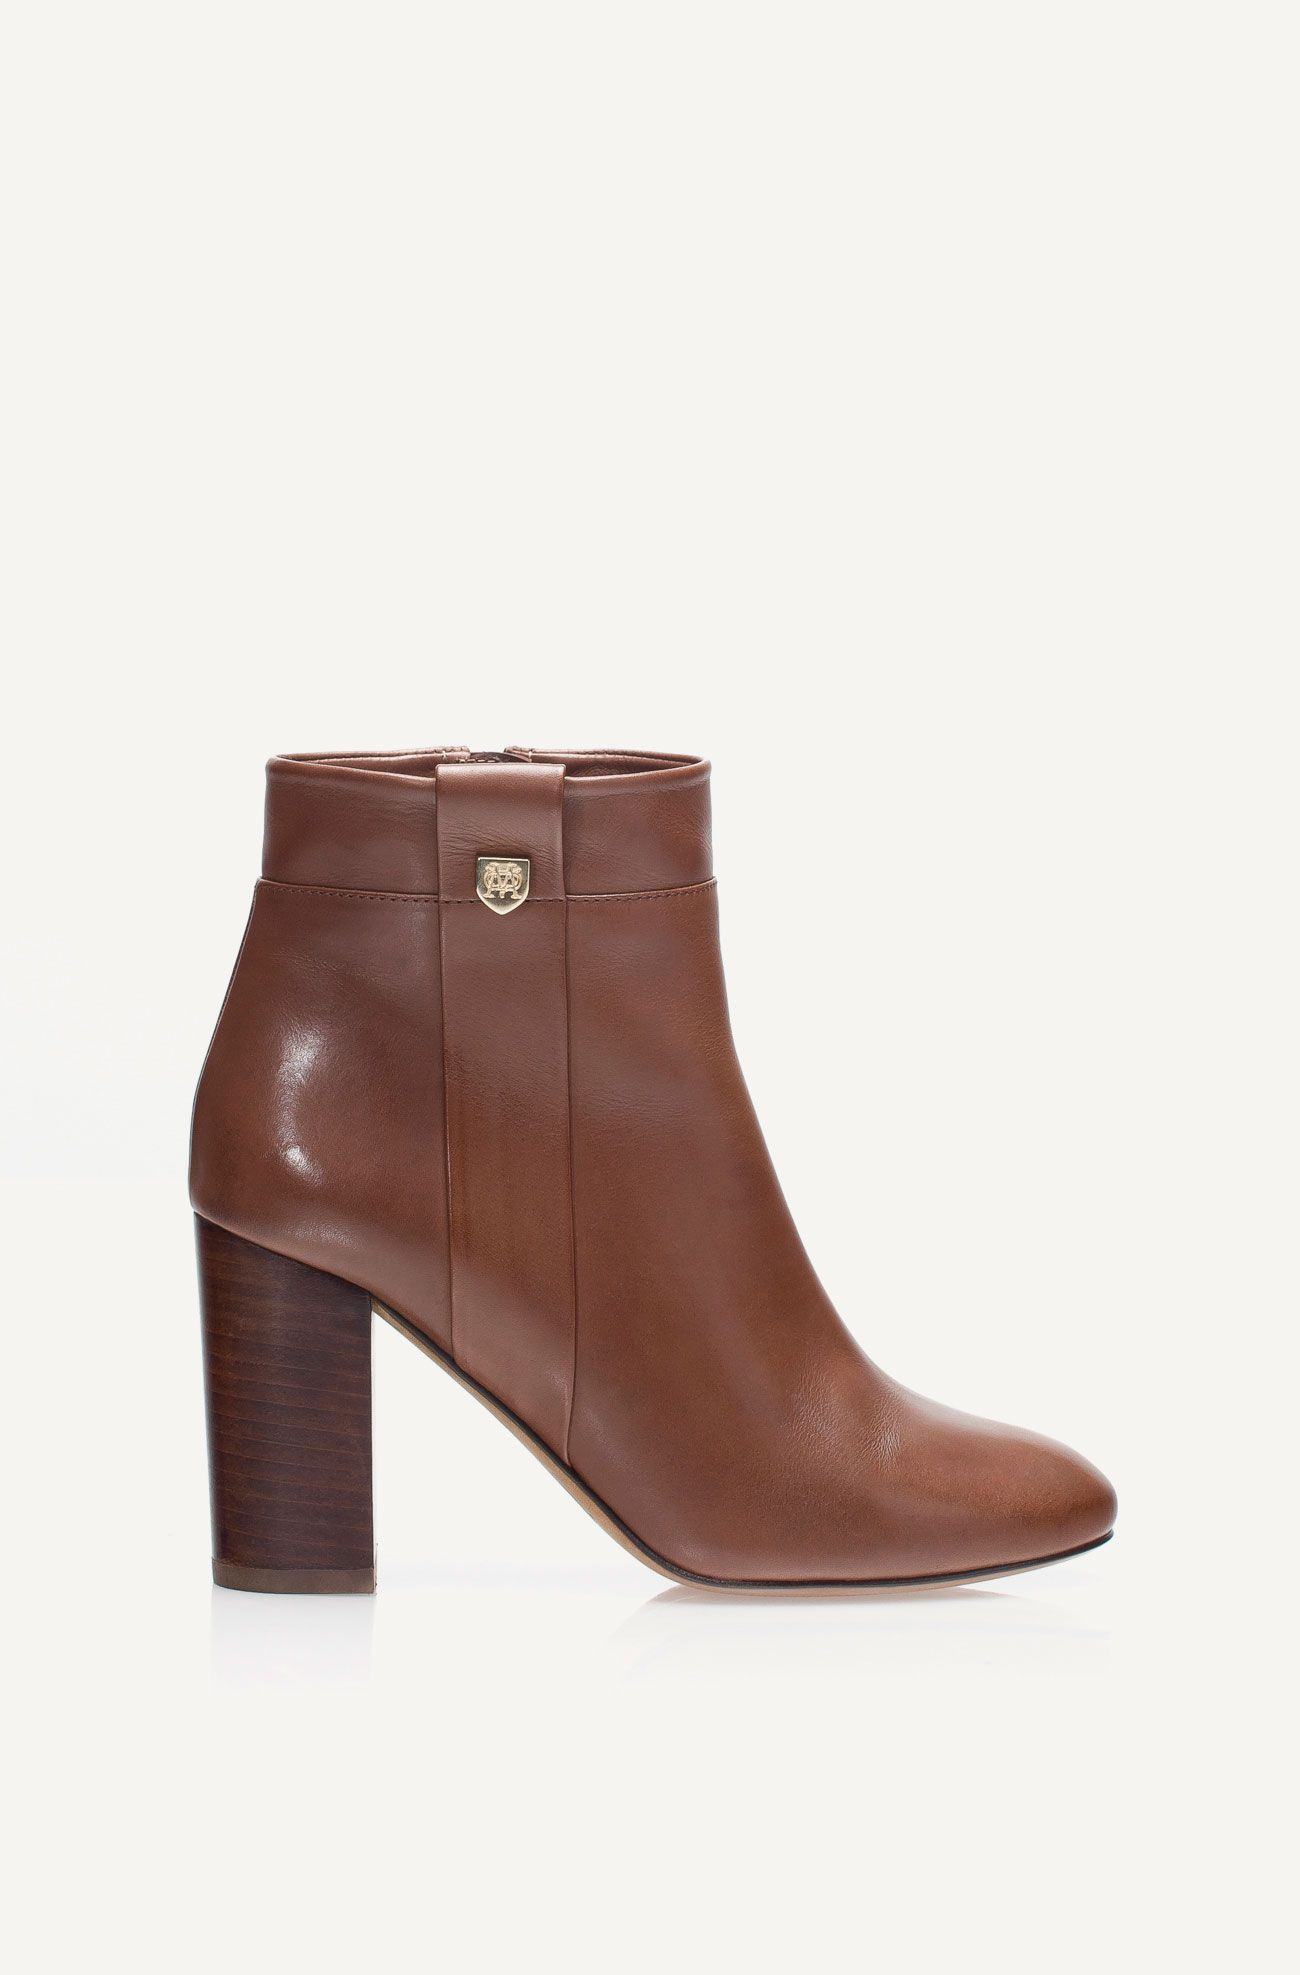 NAPPA LEATHER ANKLE BOOT